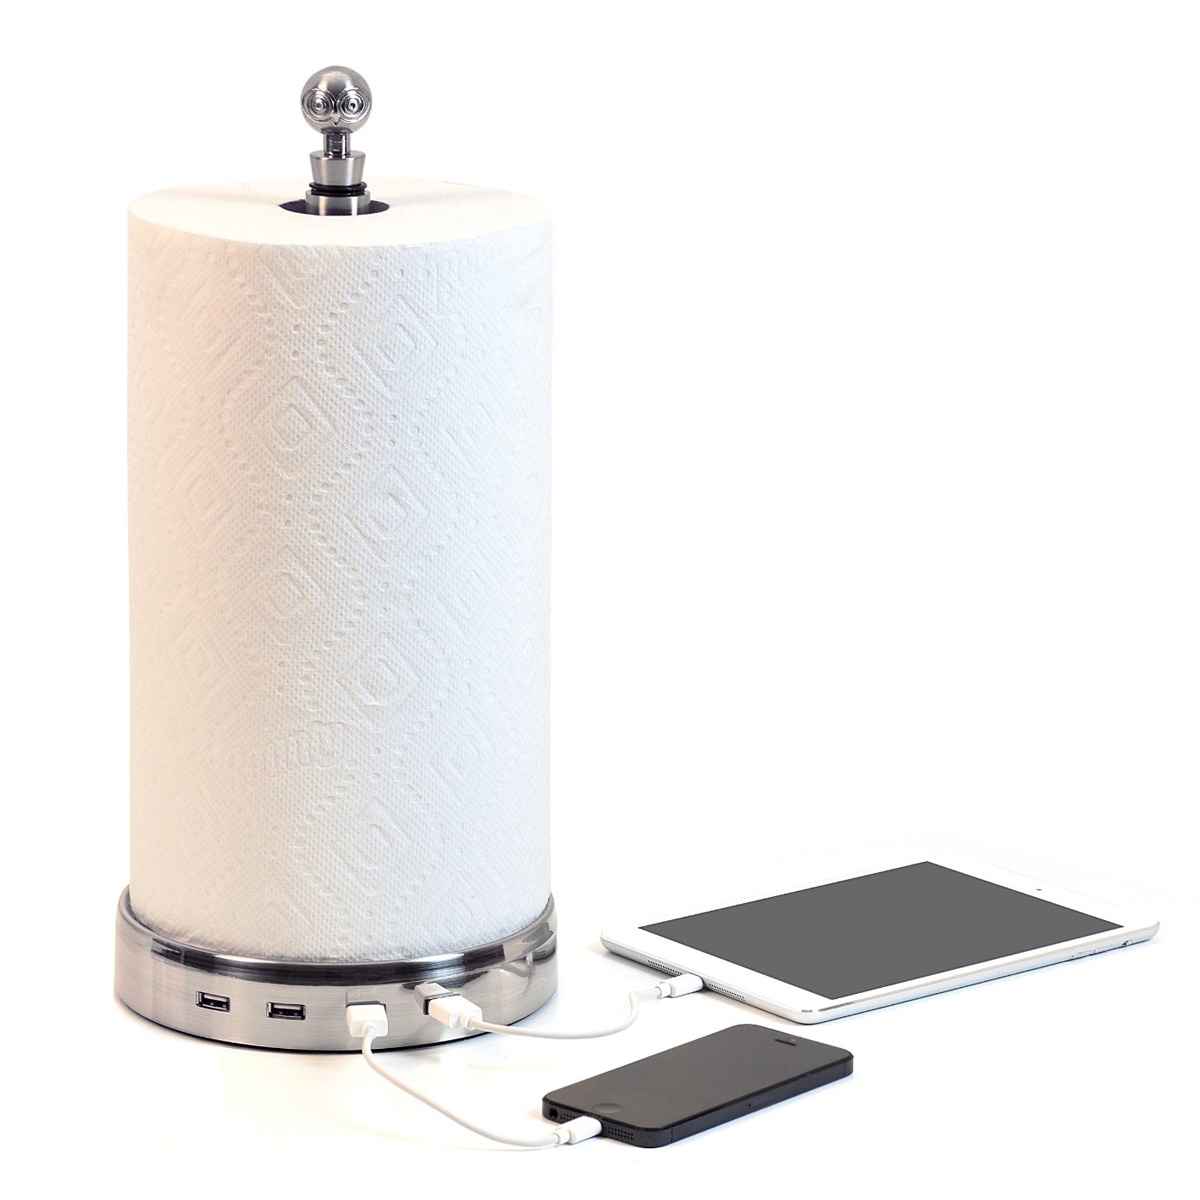 TowlHub - USB Paper Towel Holder / Charger - The Green Head